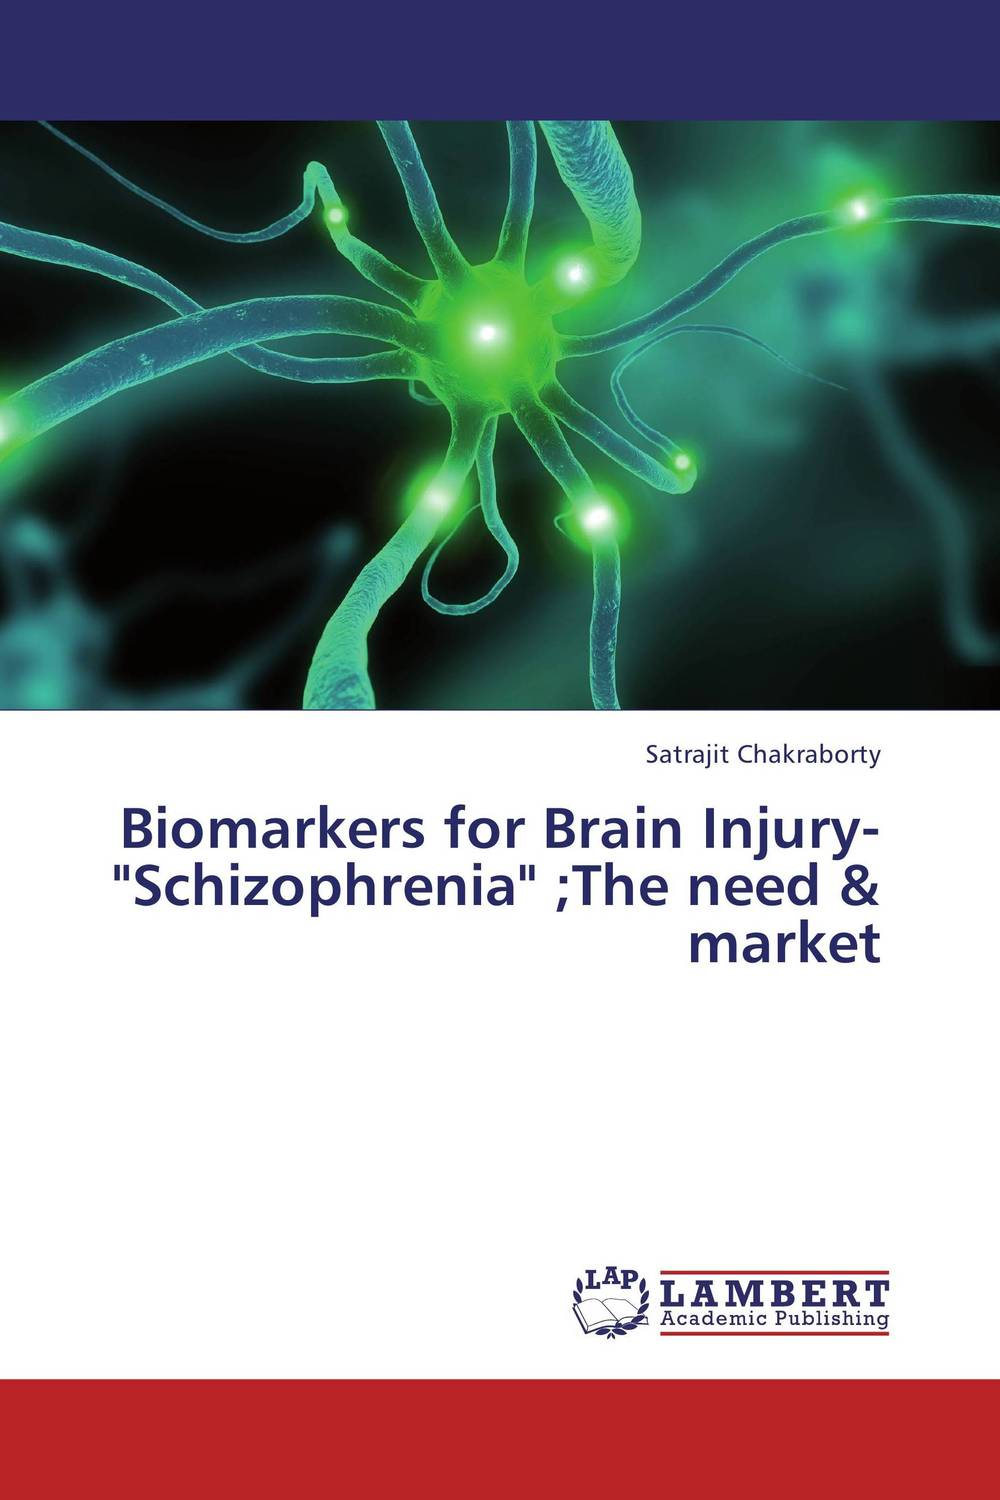 Biomarkers for Brain Injury-Schizophrenia ;The need & market biomarkers in ulcerative colitis